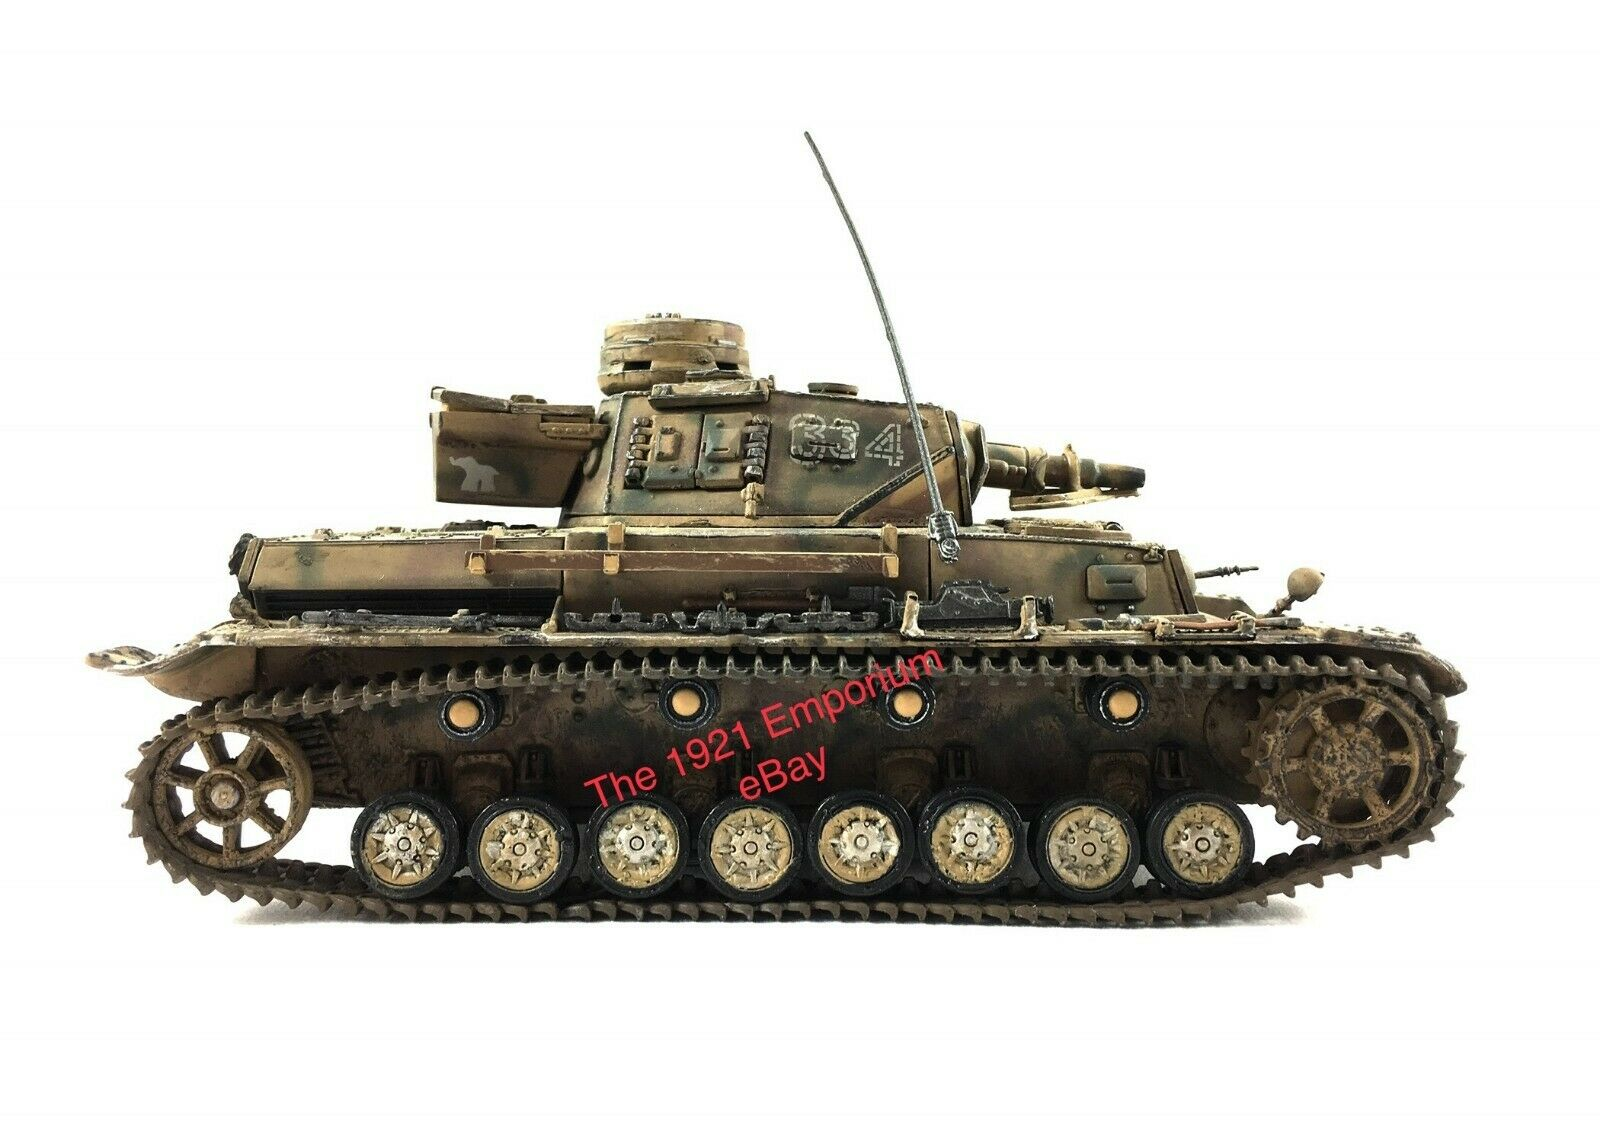 1 32 Diecast Unimax Toys Forces of Valor WWII German Army Panzer IV Tank